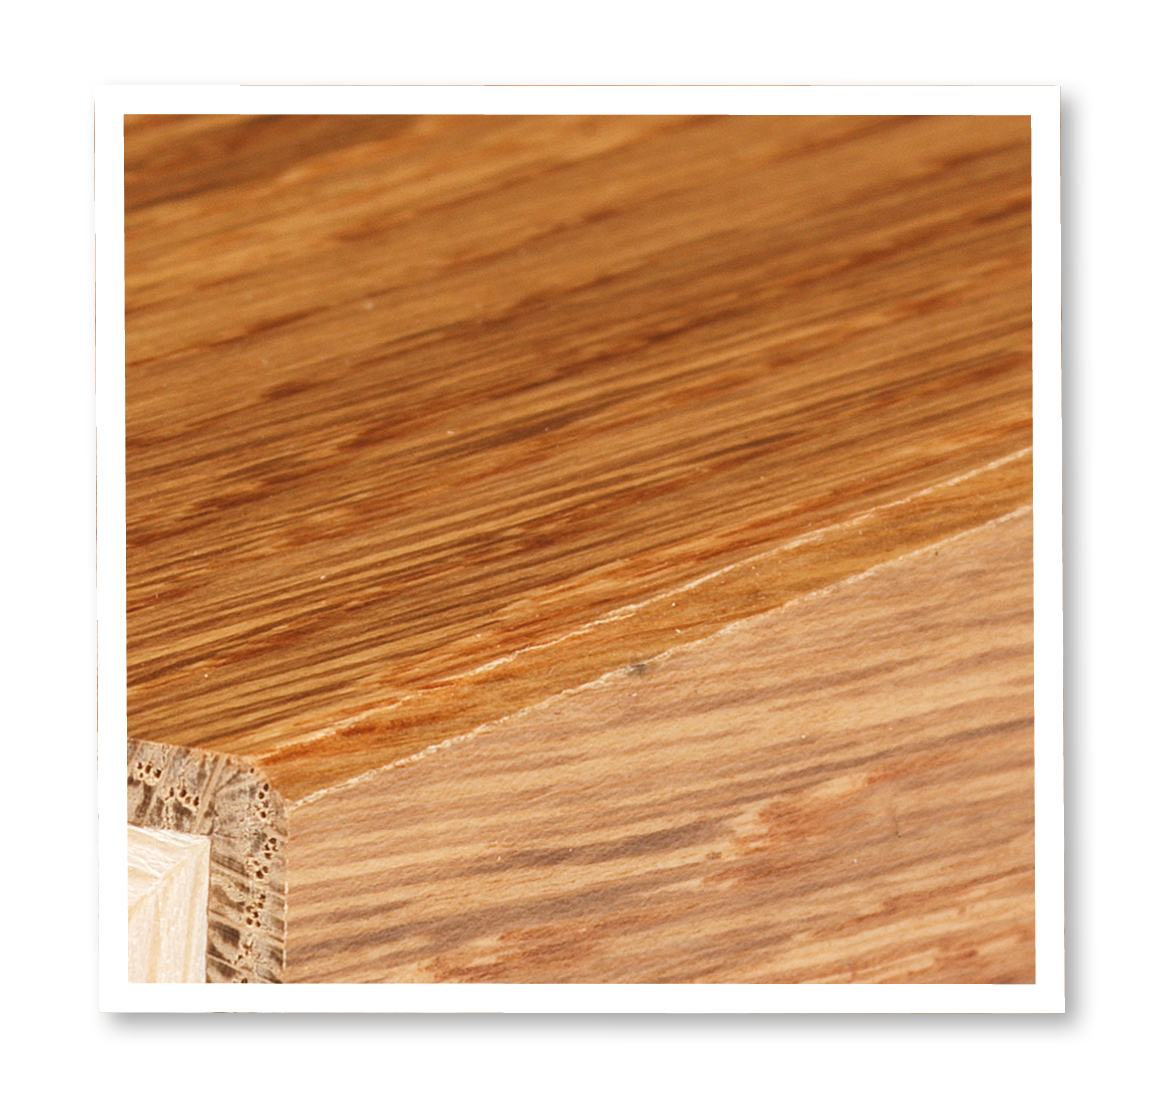 Boen wood flooring - Origami Tech detail